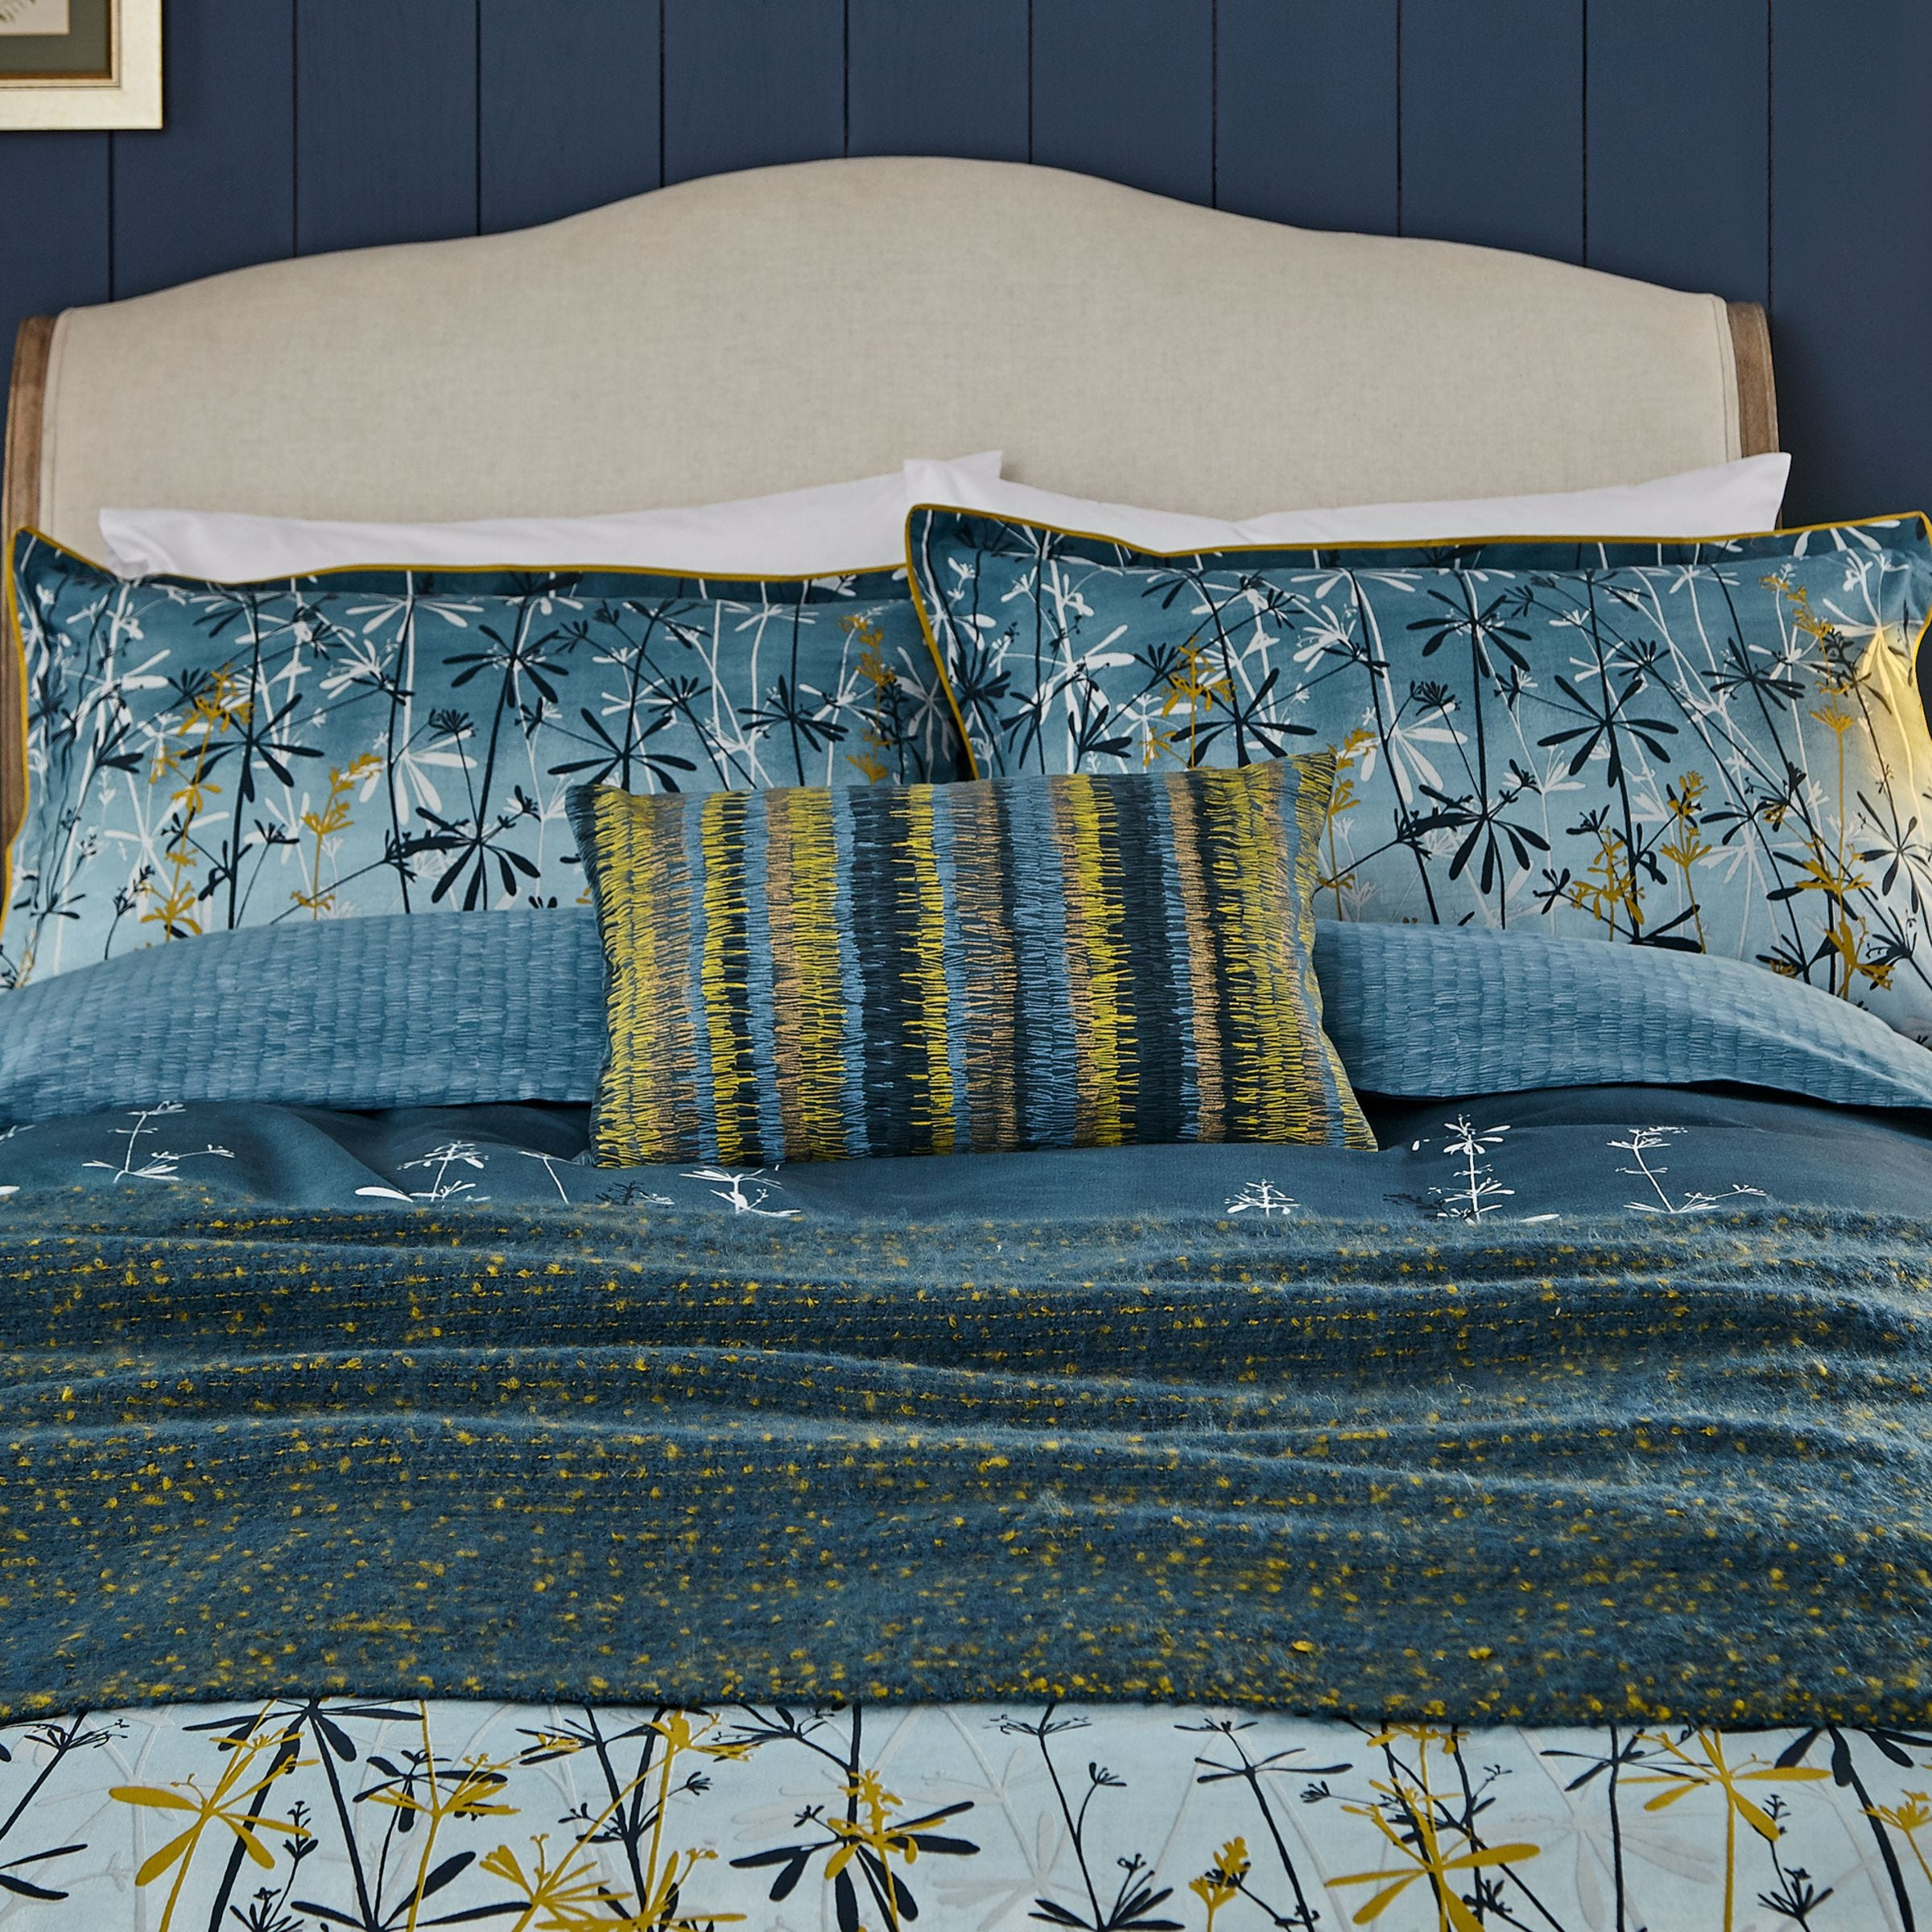 Clarissa Hulse Clarissa Hulse Goosegrass Blue 100% Cotton Duvet Cover and Pillowcase Set Blue, Yellow and White 140x200cm and 48x76cm